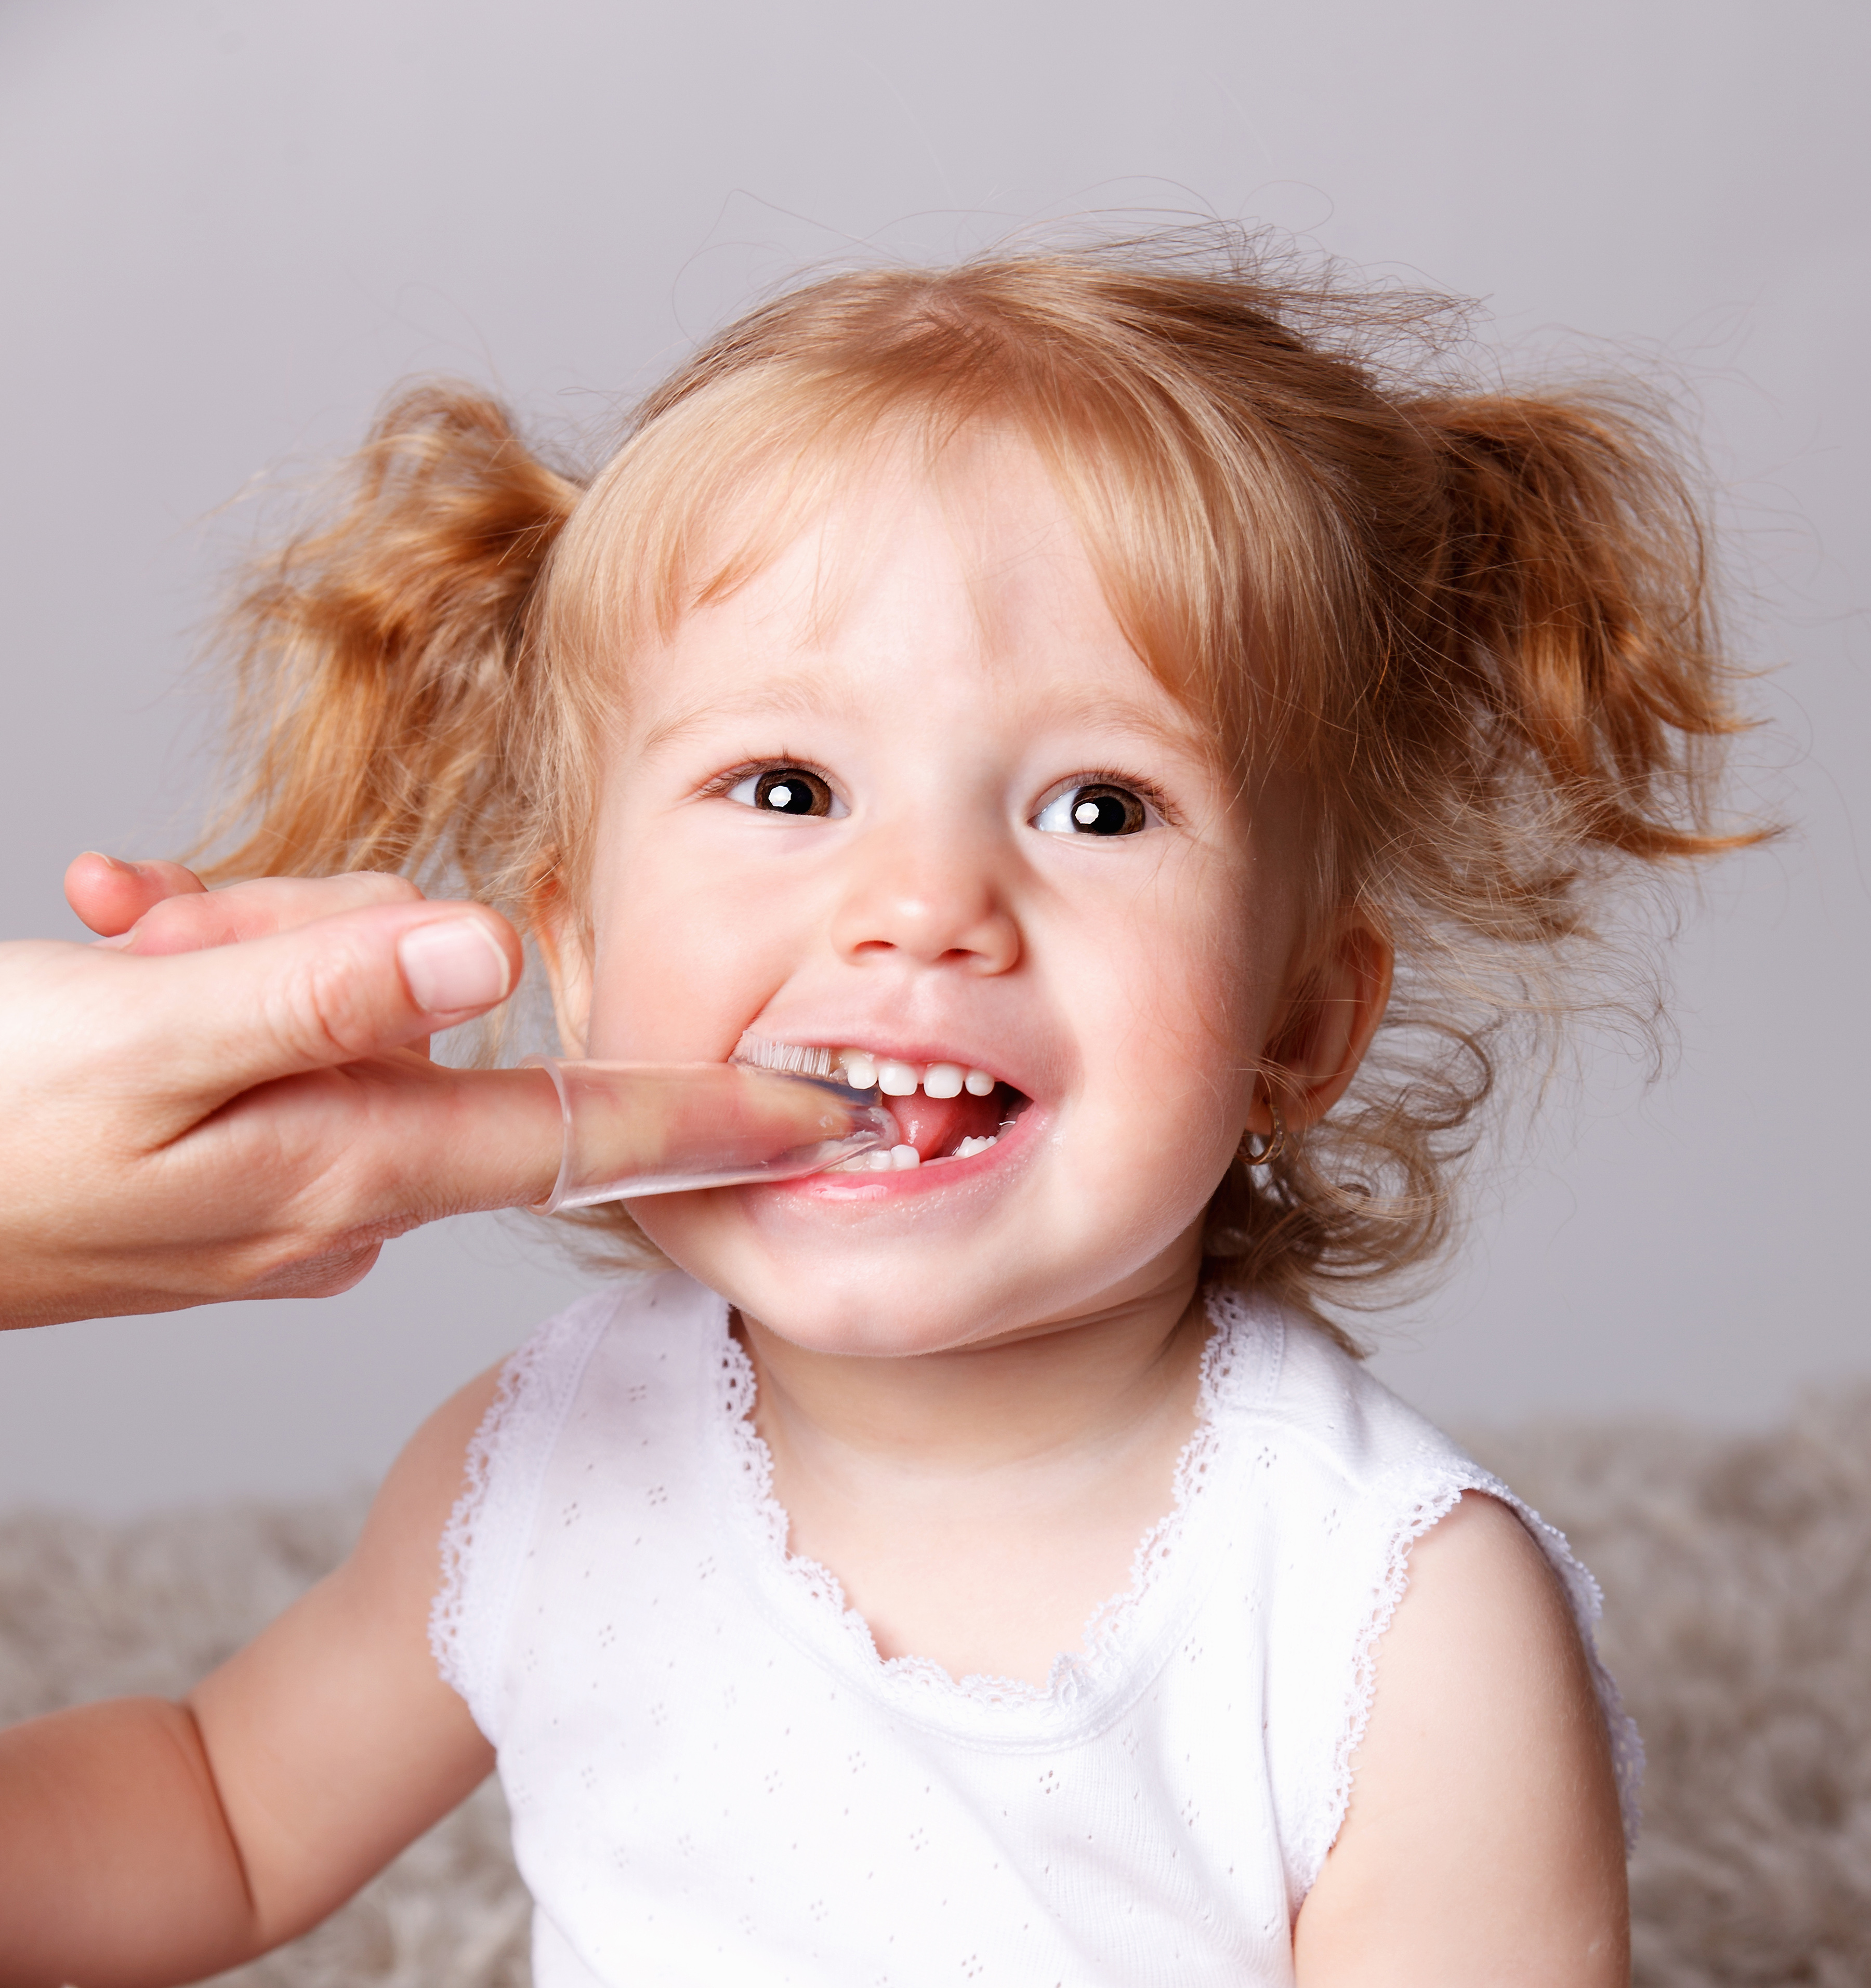 Little curly girl 5013 in practice brushing teeth 55637